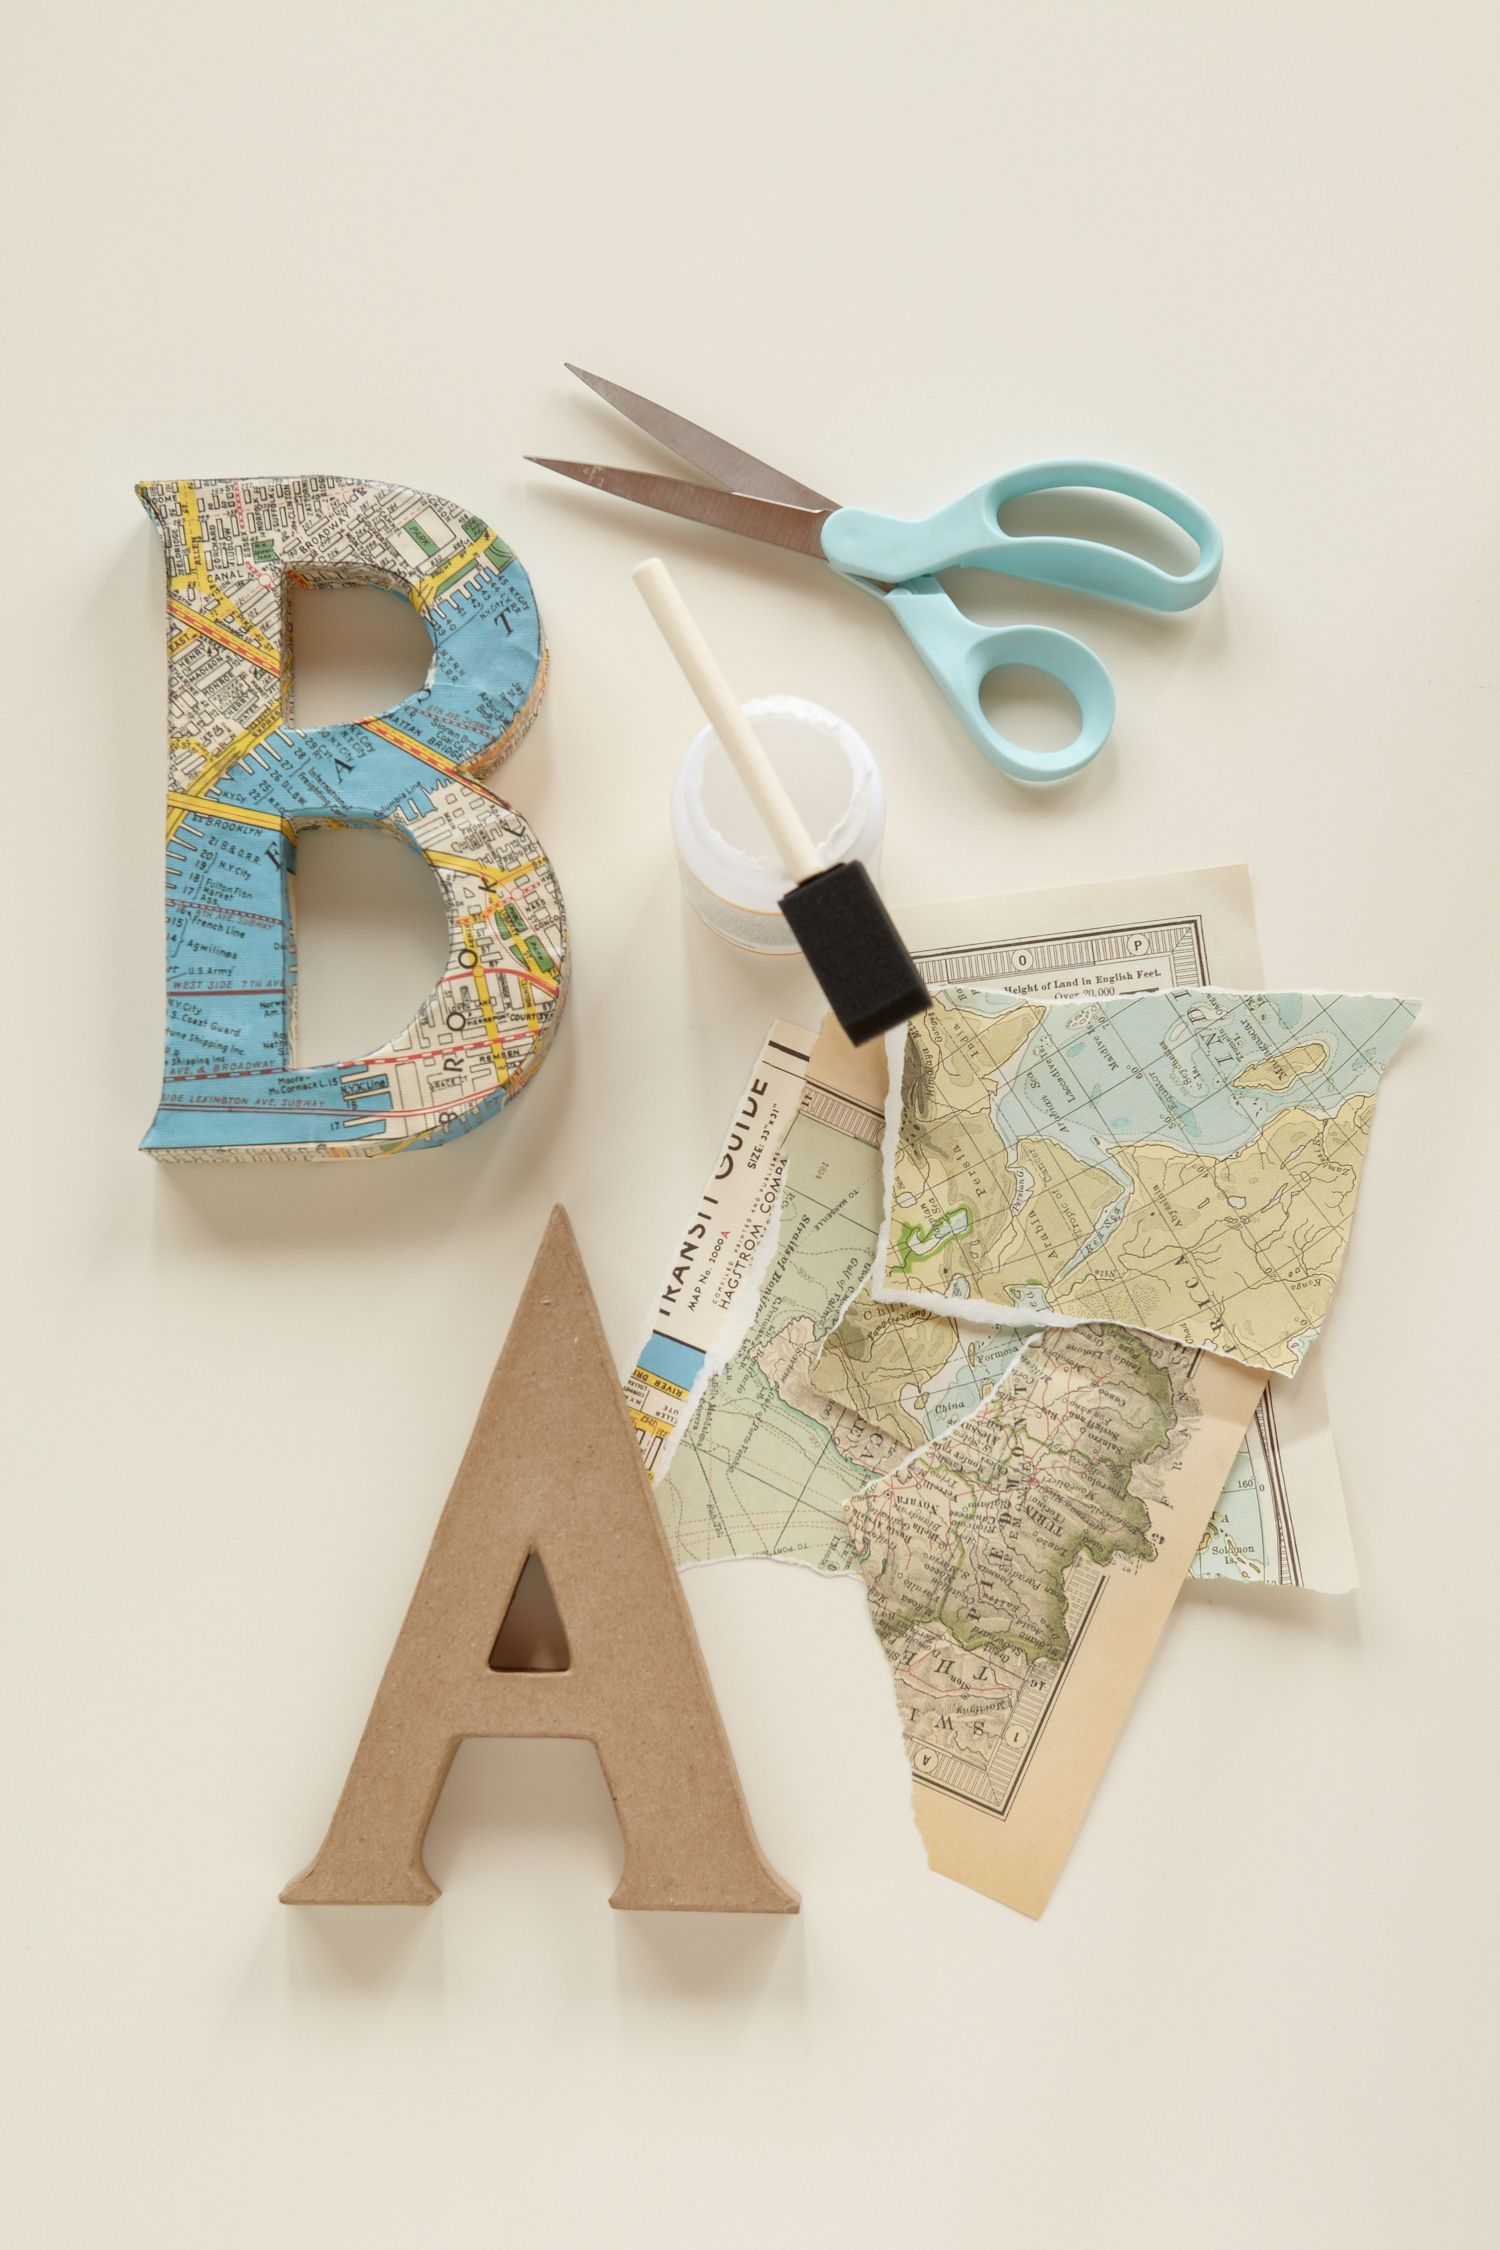 journey of love decoupage letters use vintage maps and cut out letters to spell